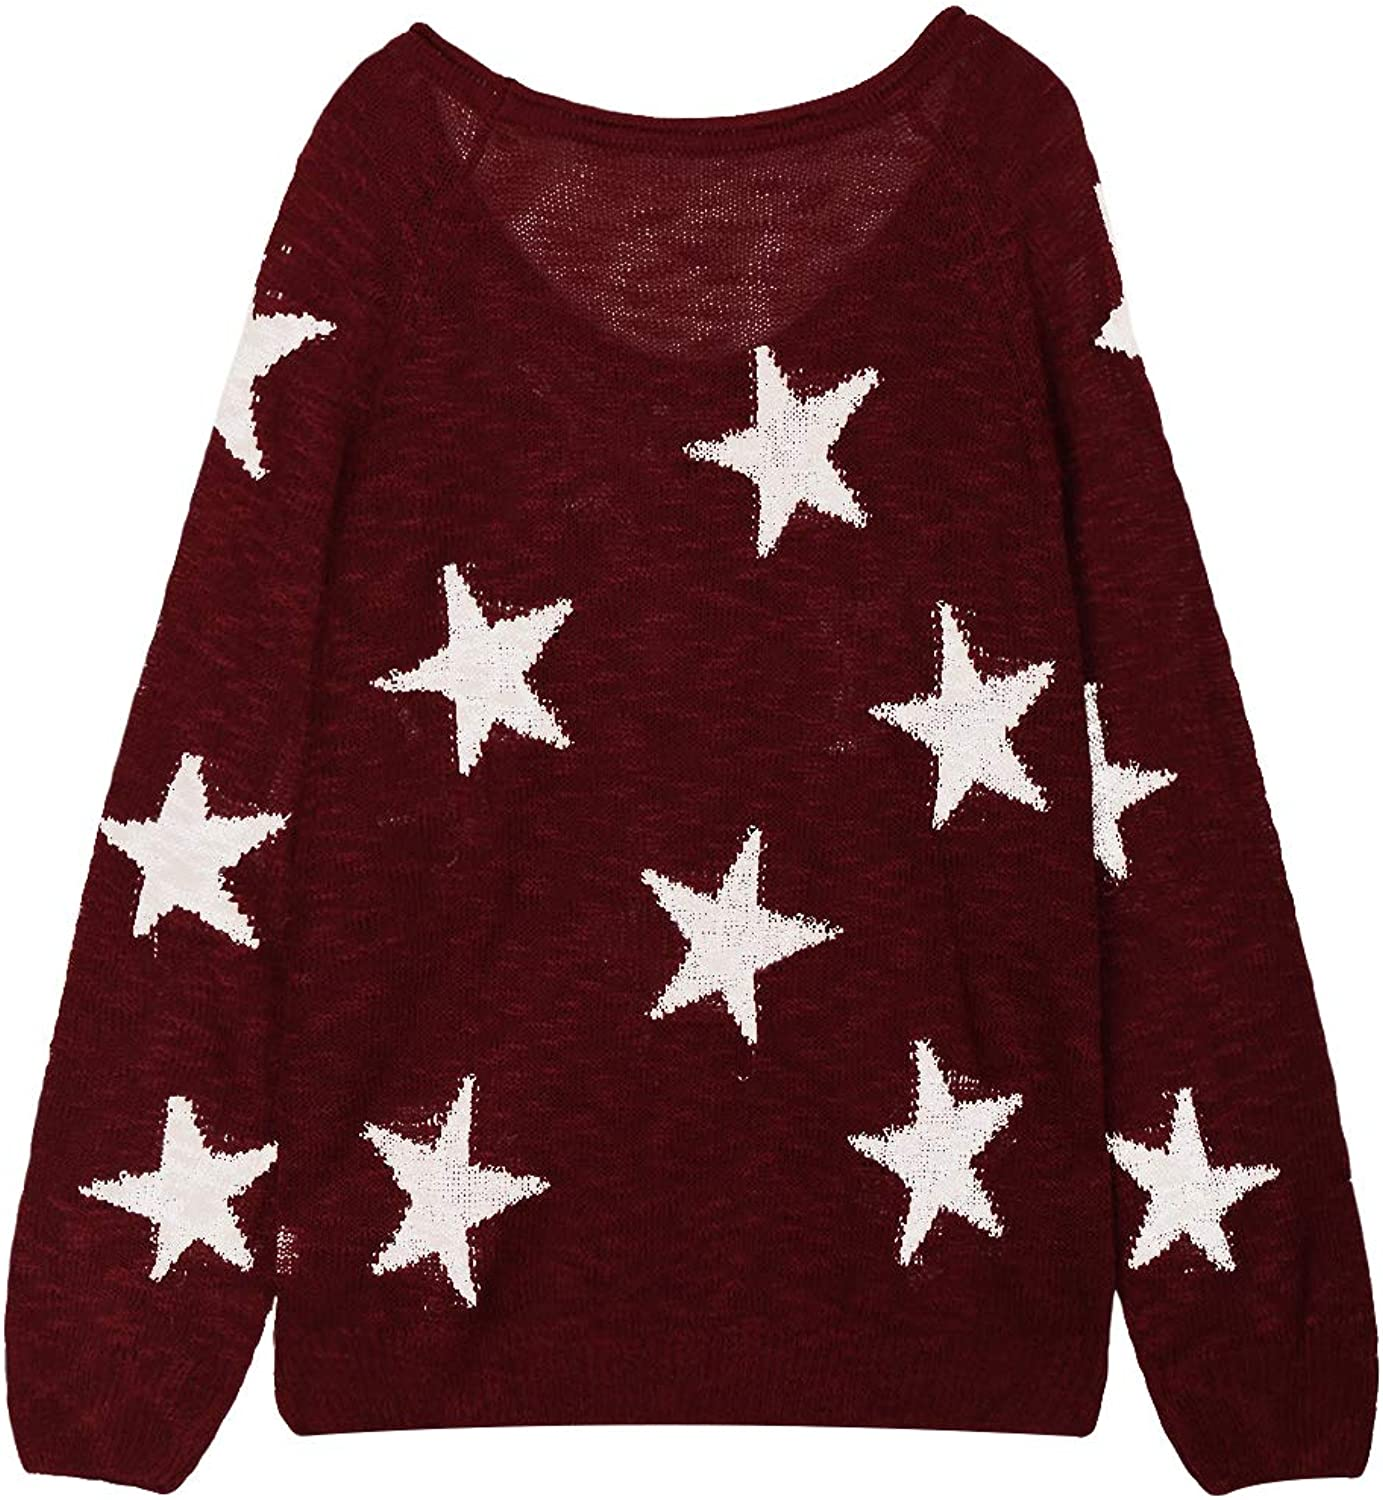 Meenew Womens Off The Shoulder Star Sweater Casual Pullover Tops Blouses